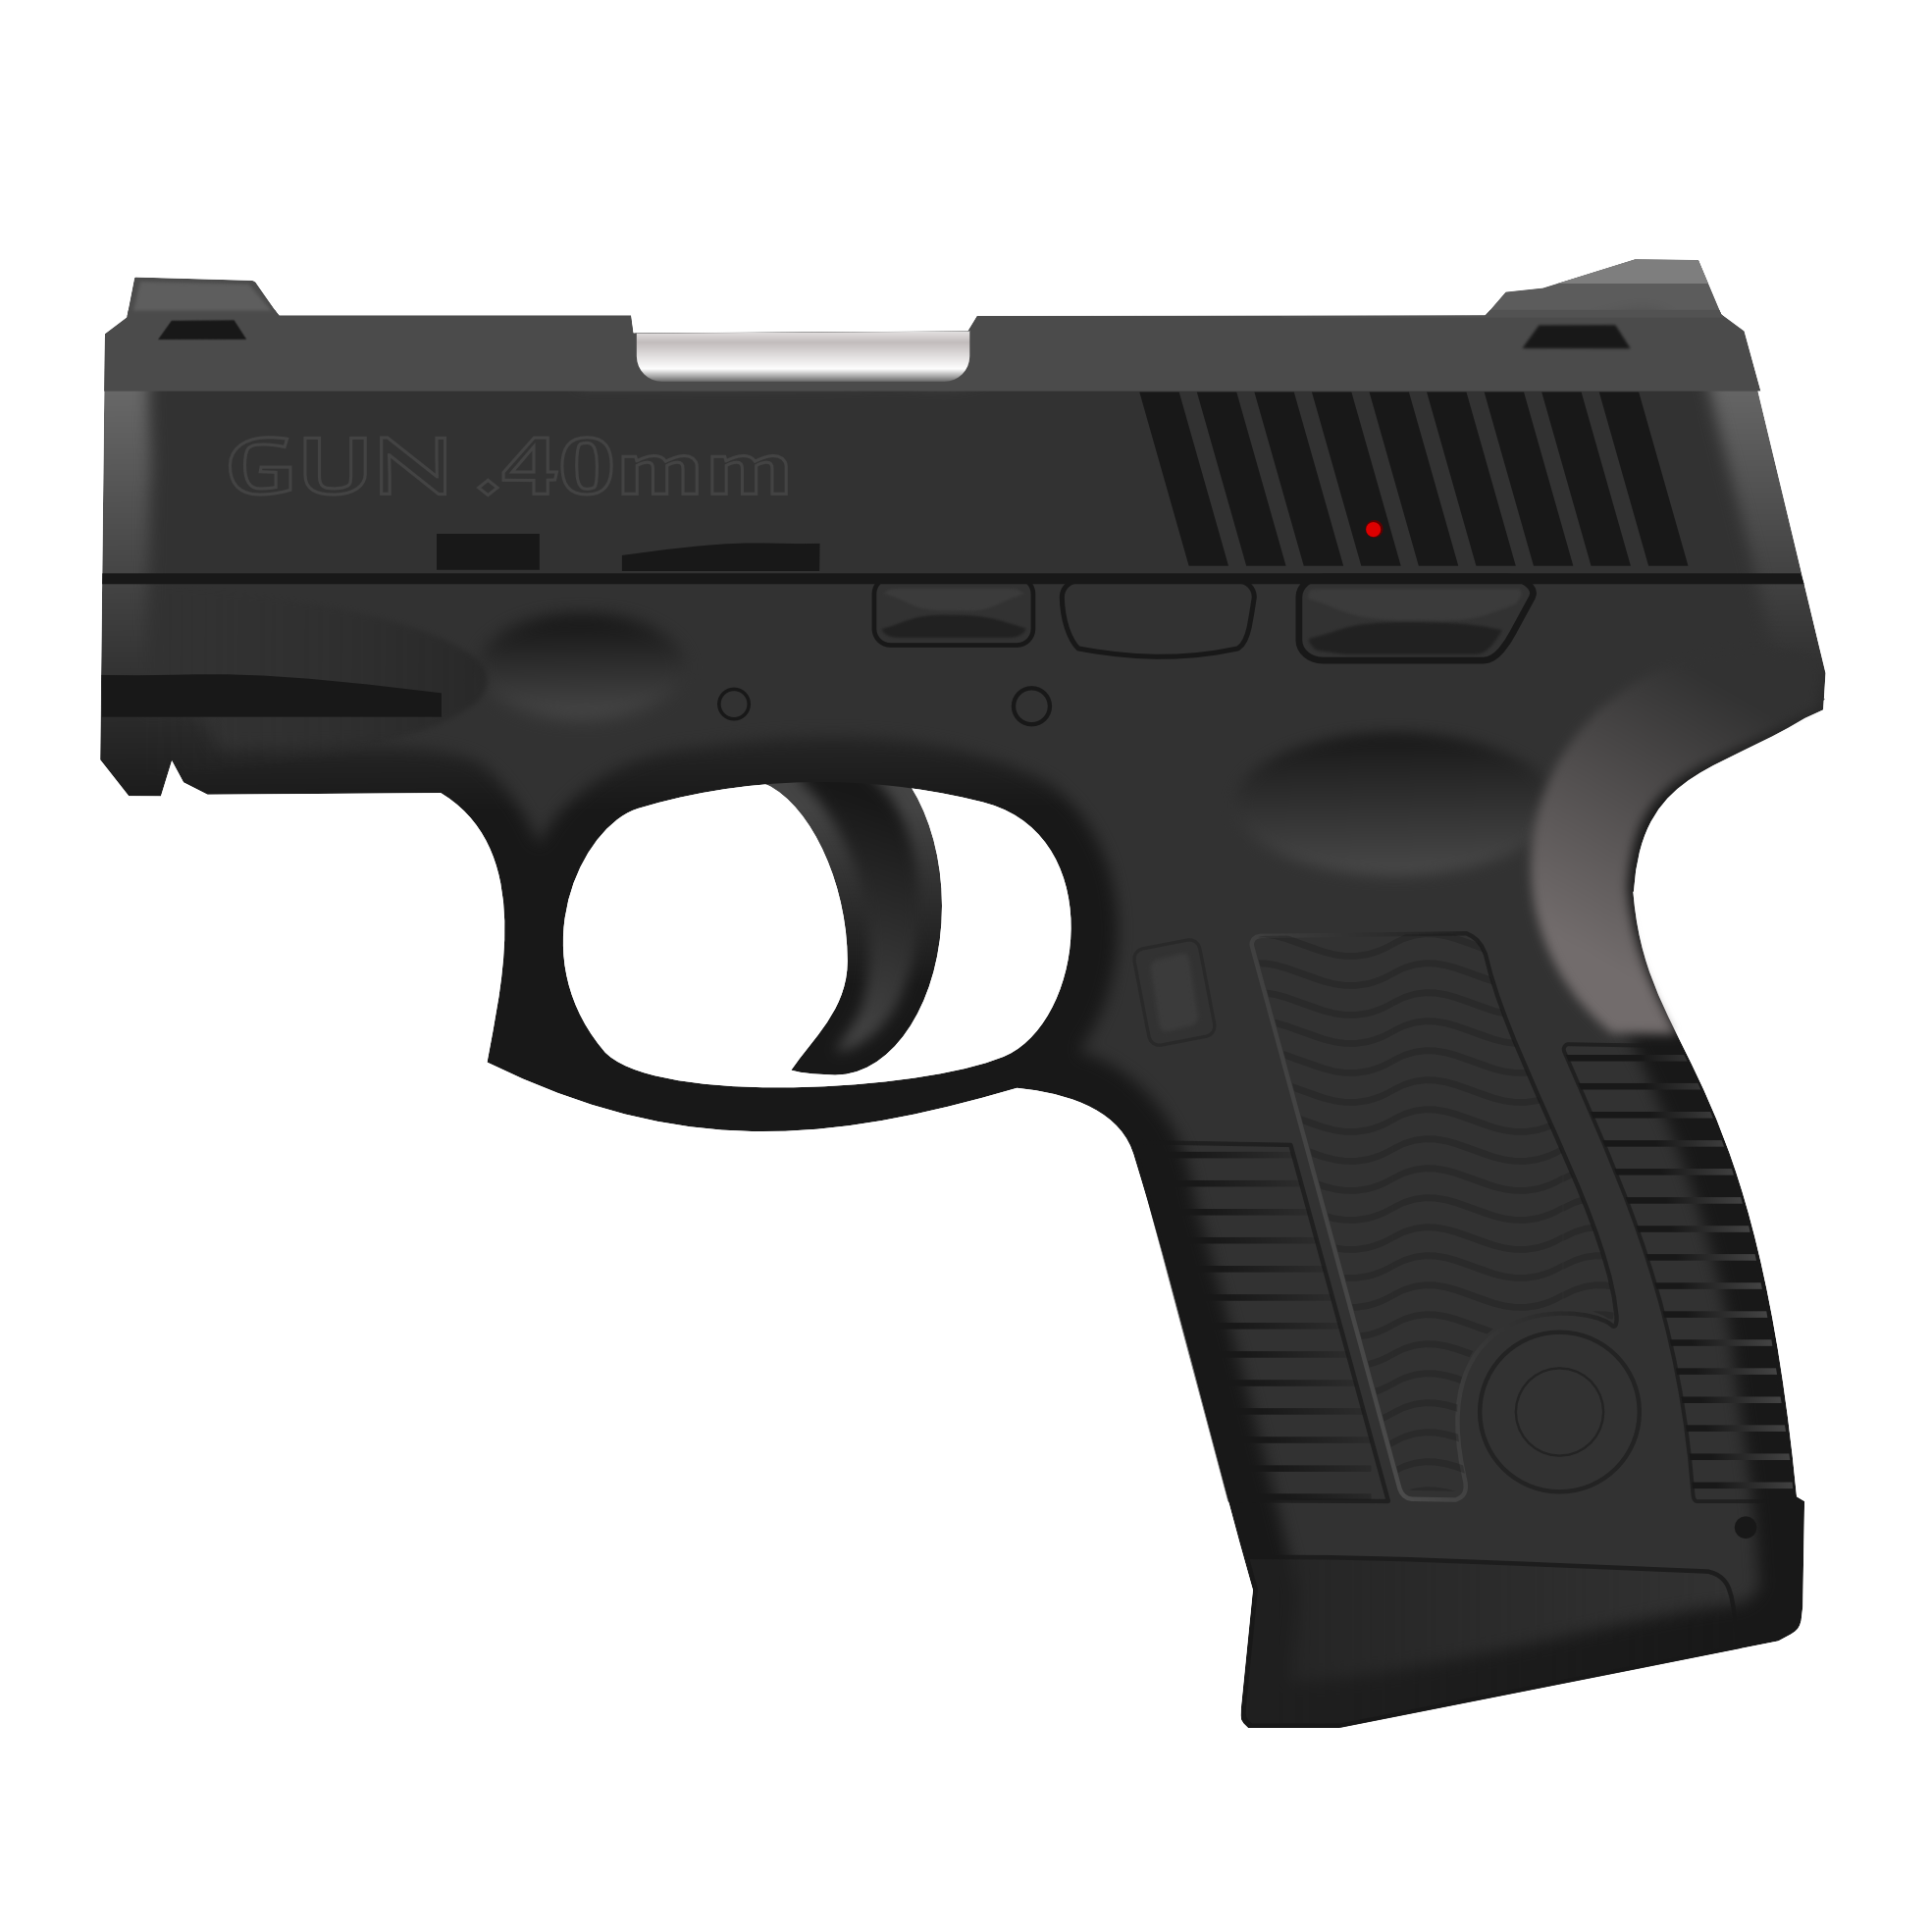 Weapon clip firearm. Pin by next on